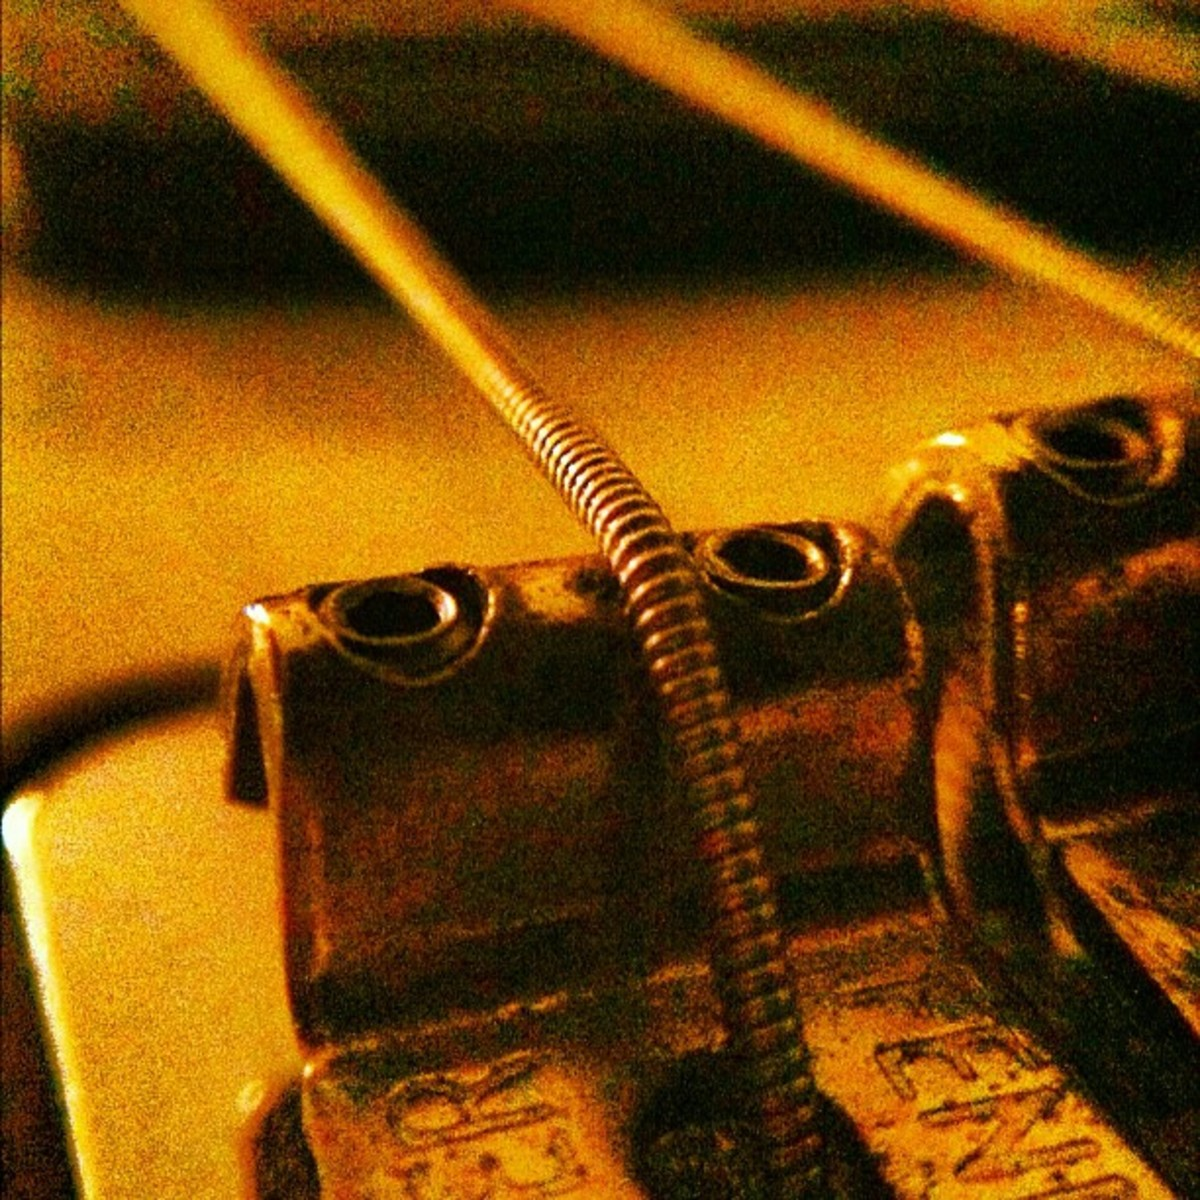 Closeup of (a part of) the bridge on a Fender Stratocaster